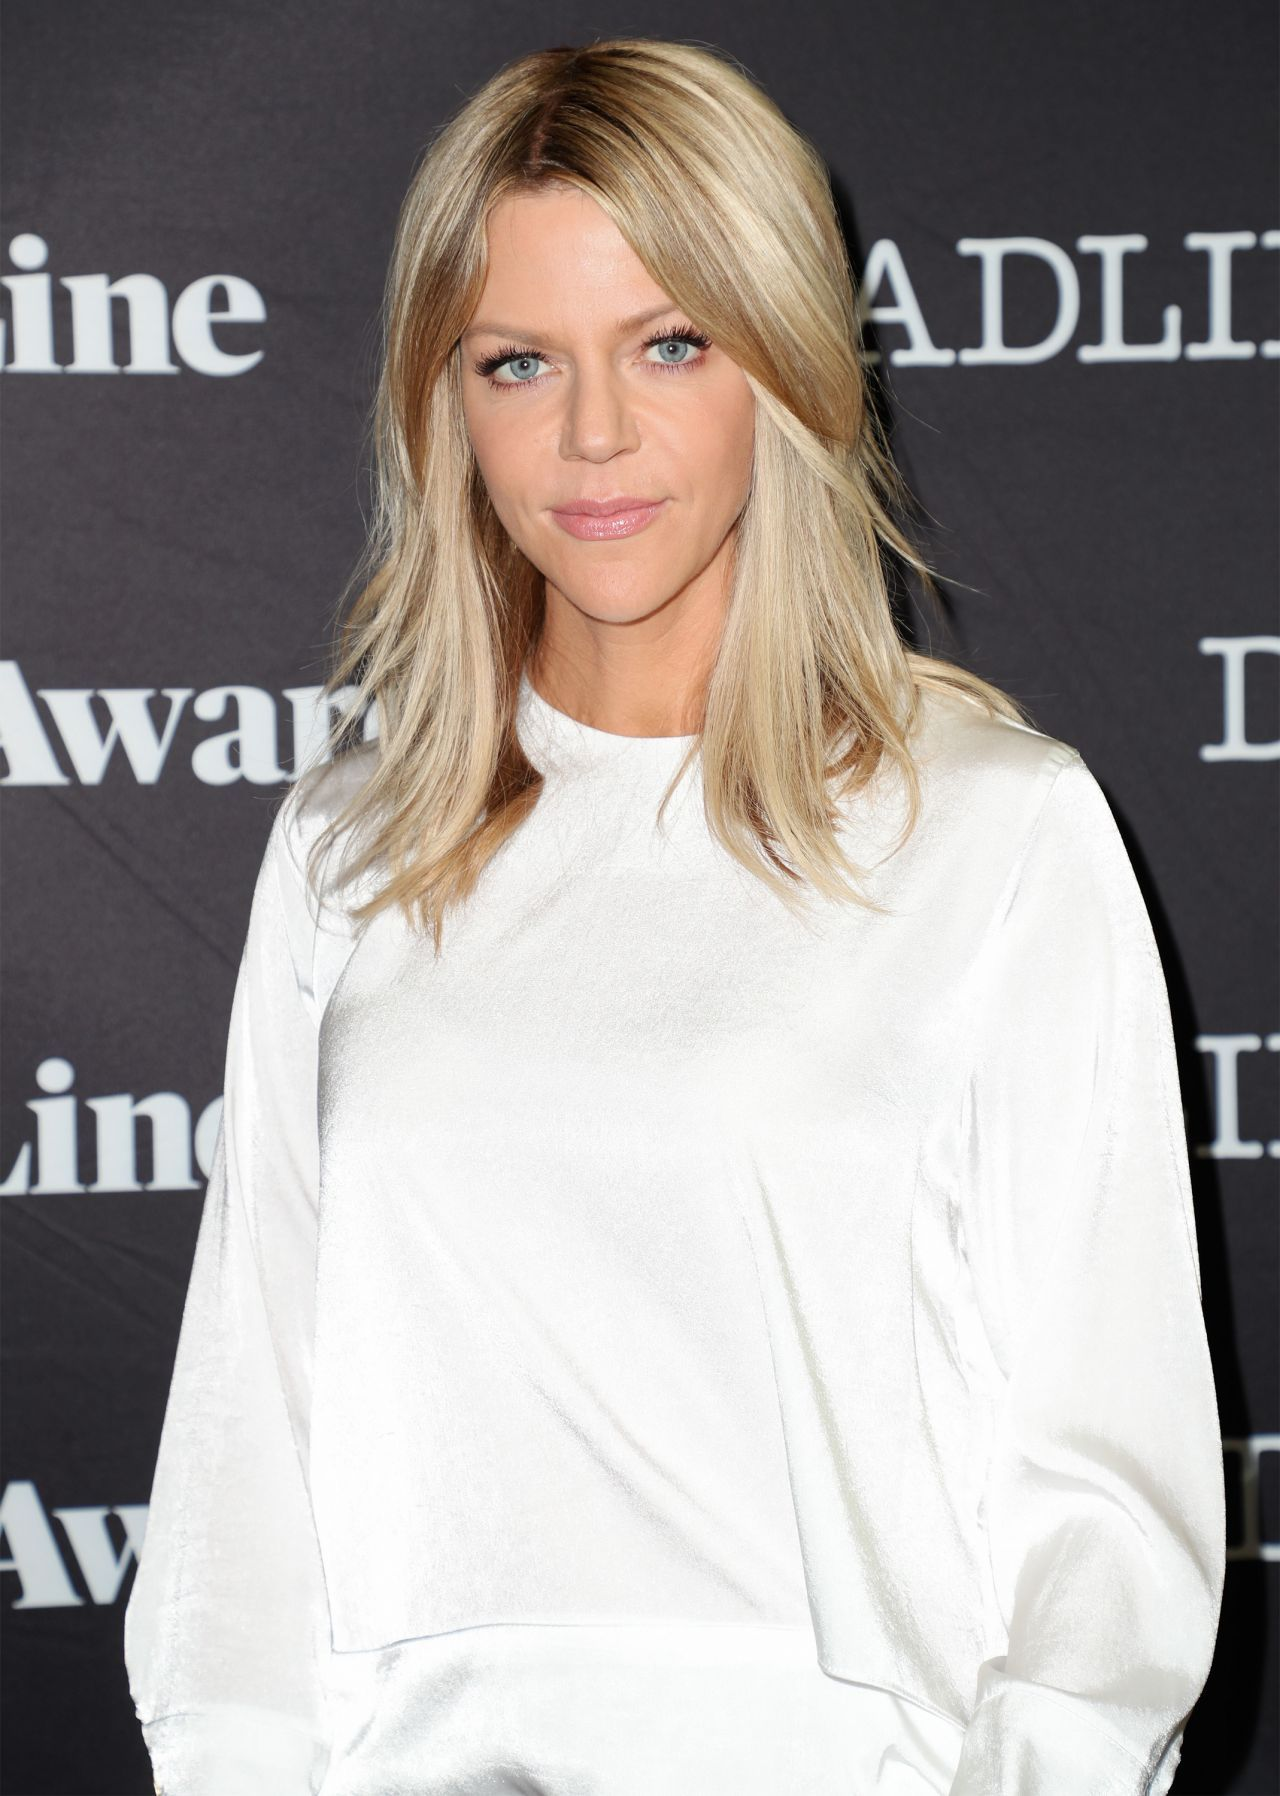 Kaitlin Olson Kaitlinolson At Deadlines The Contenders Emmys Event